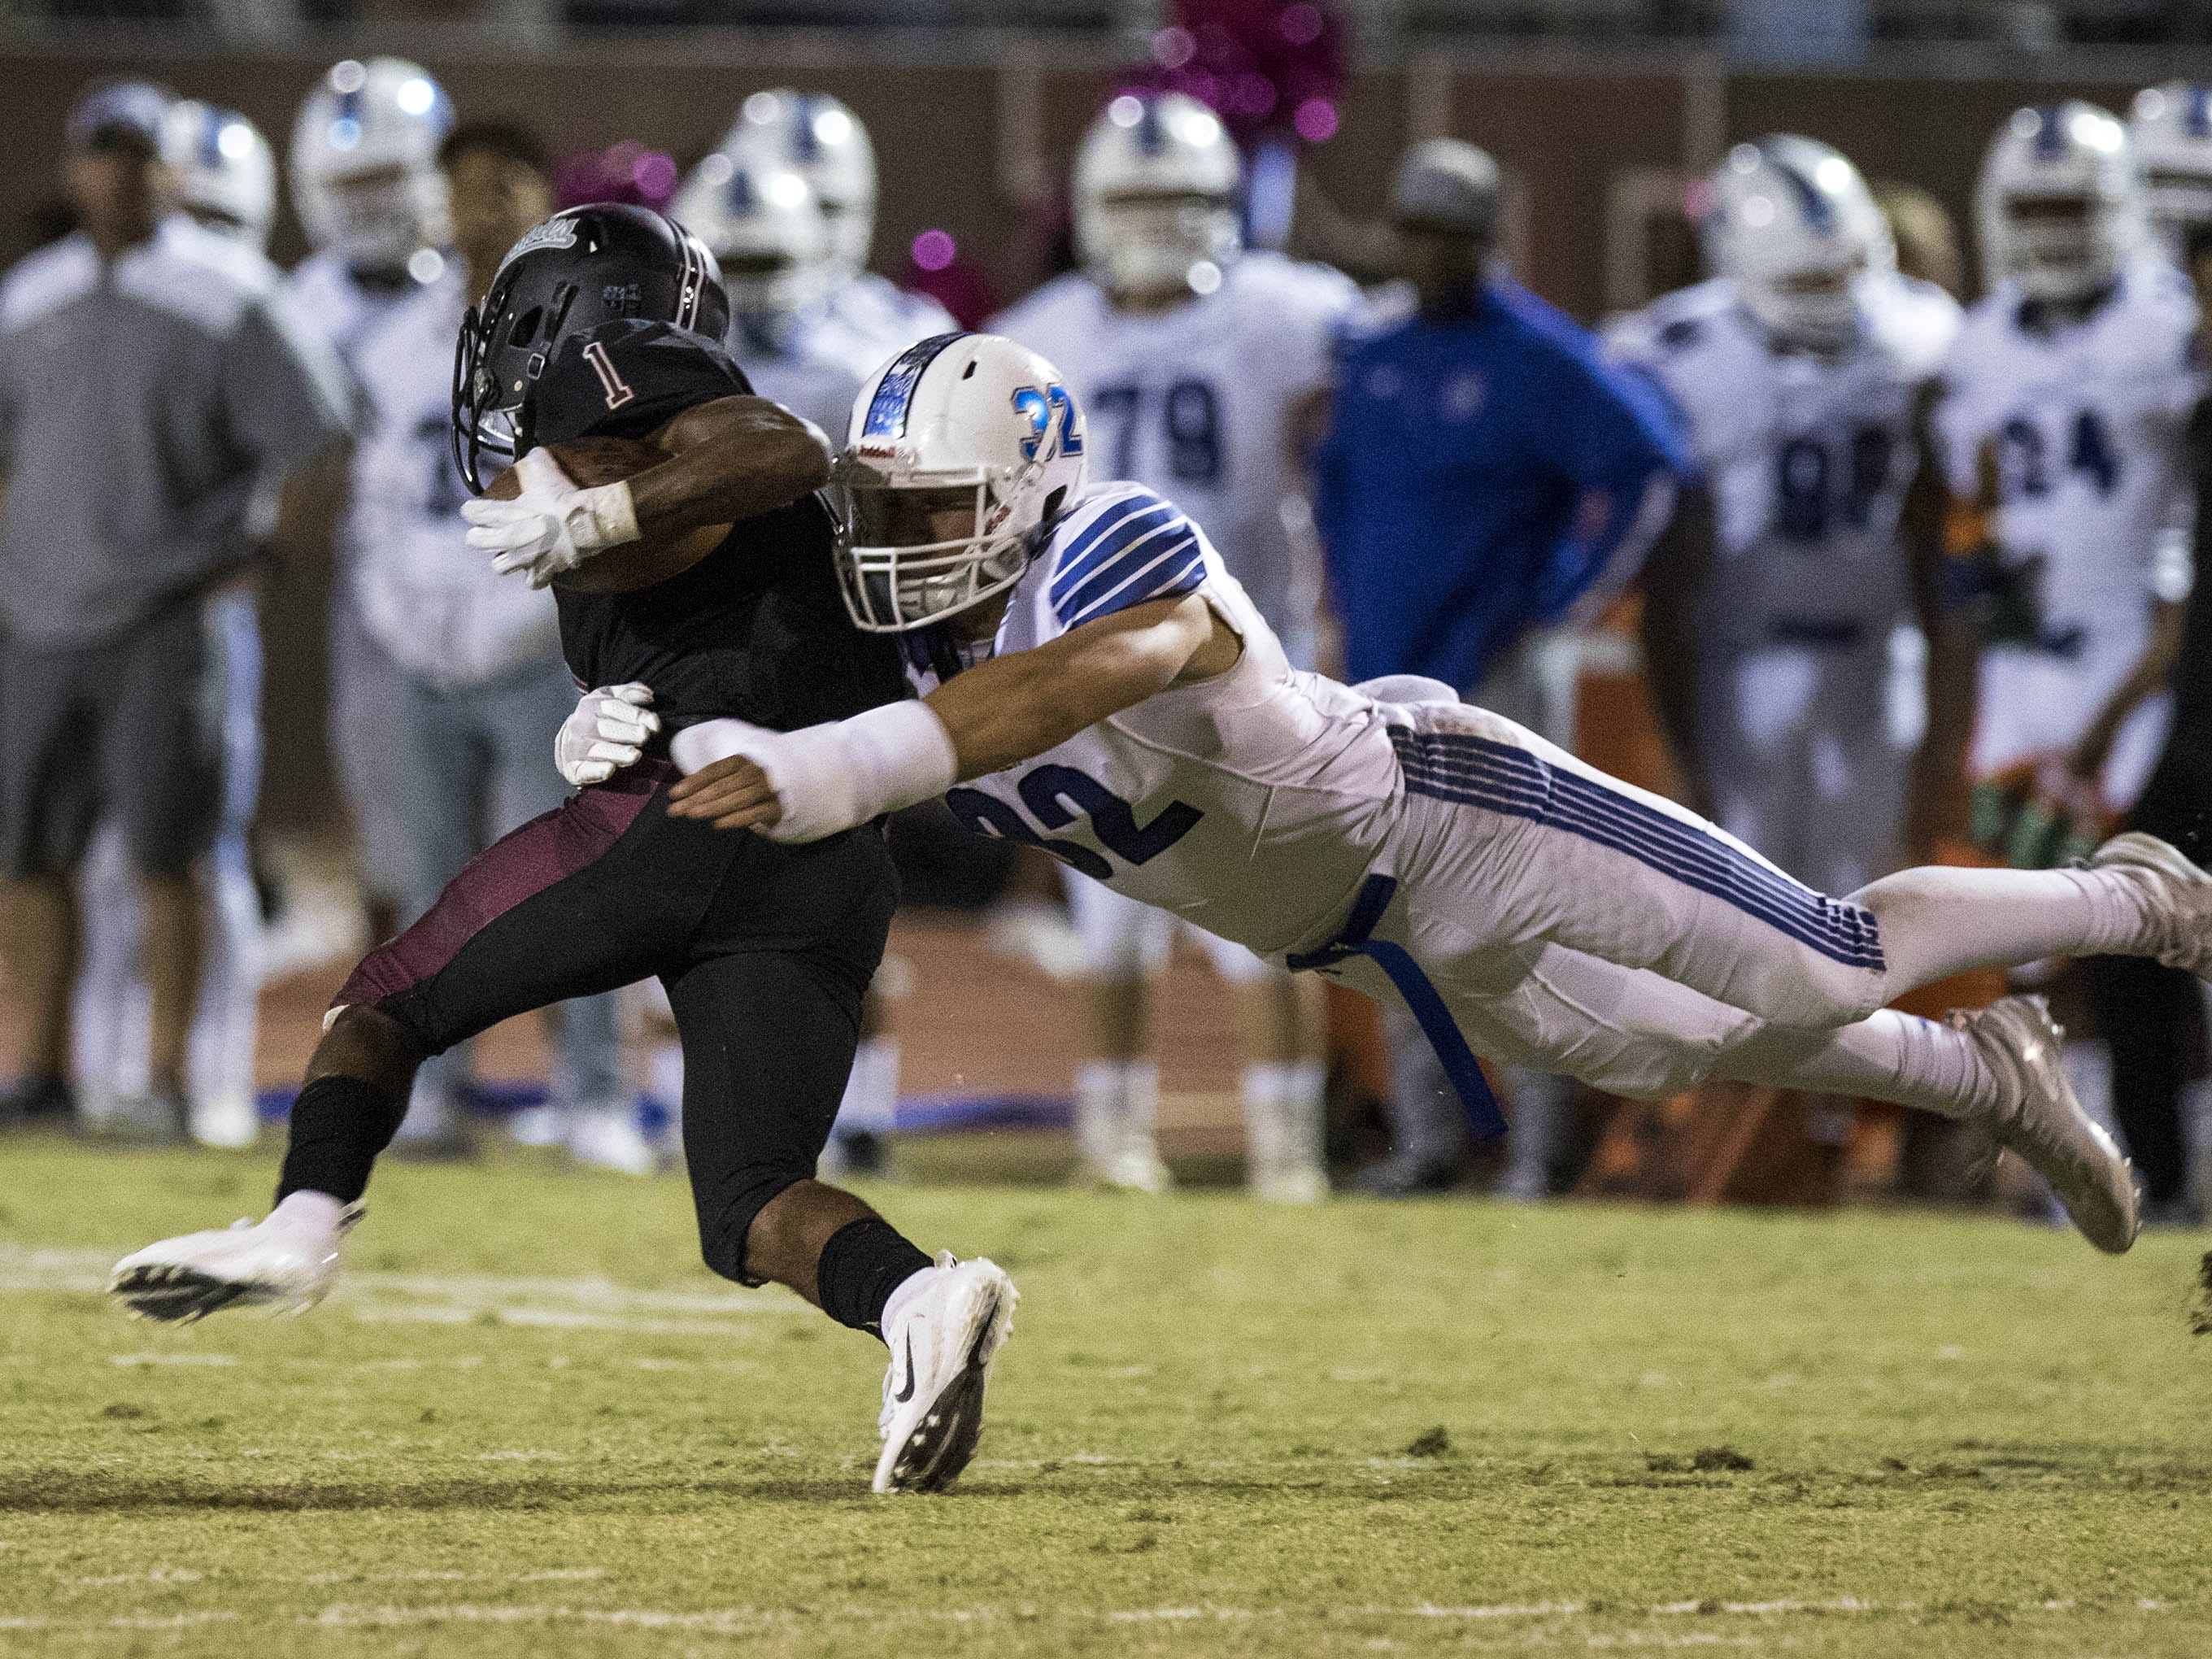 Chandler's Tate Romney makes a diving tackle against Hamilton's Pierre Taylor during their game in Chandler, Friday, Oct. 26, 2018. #azhsfb